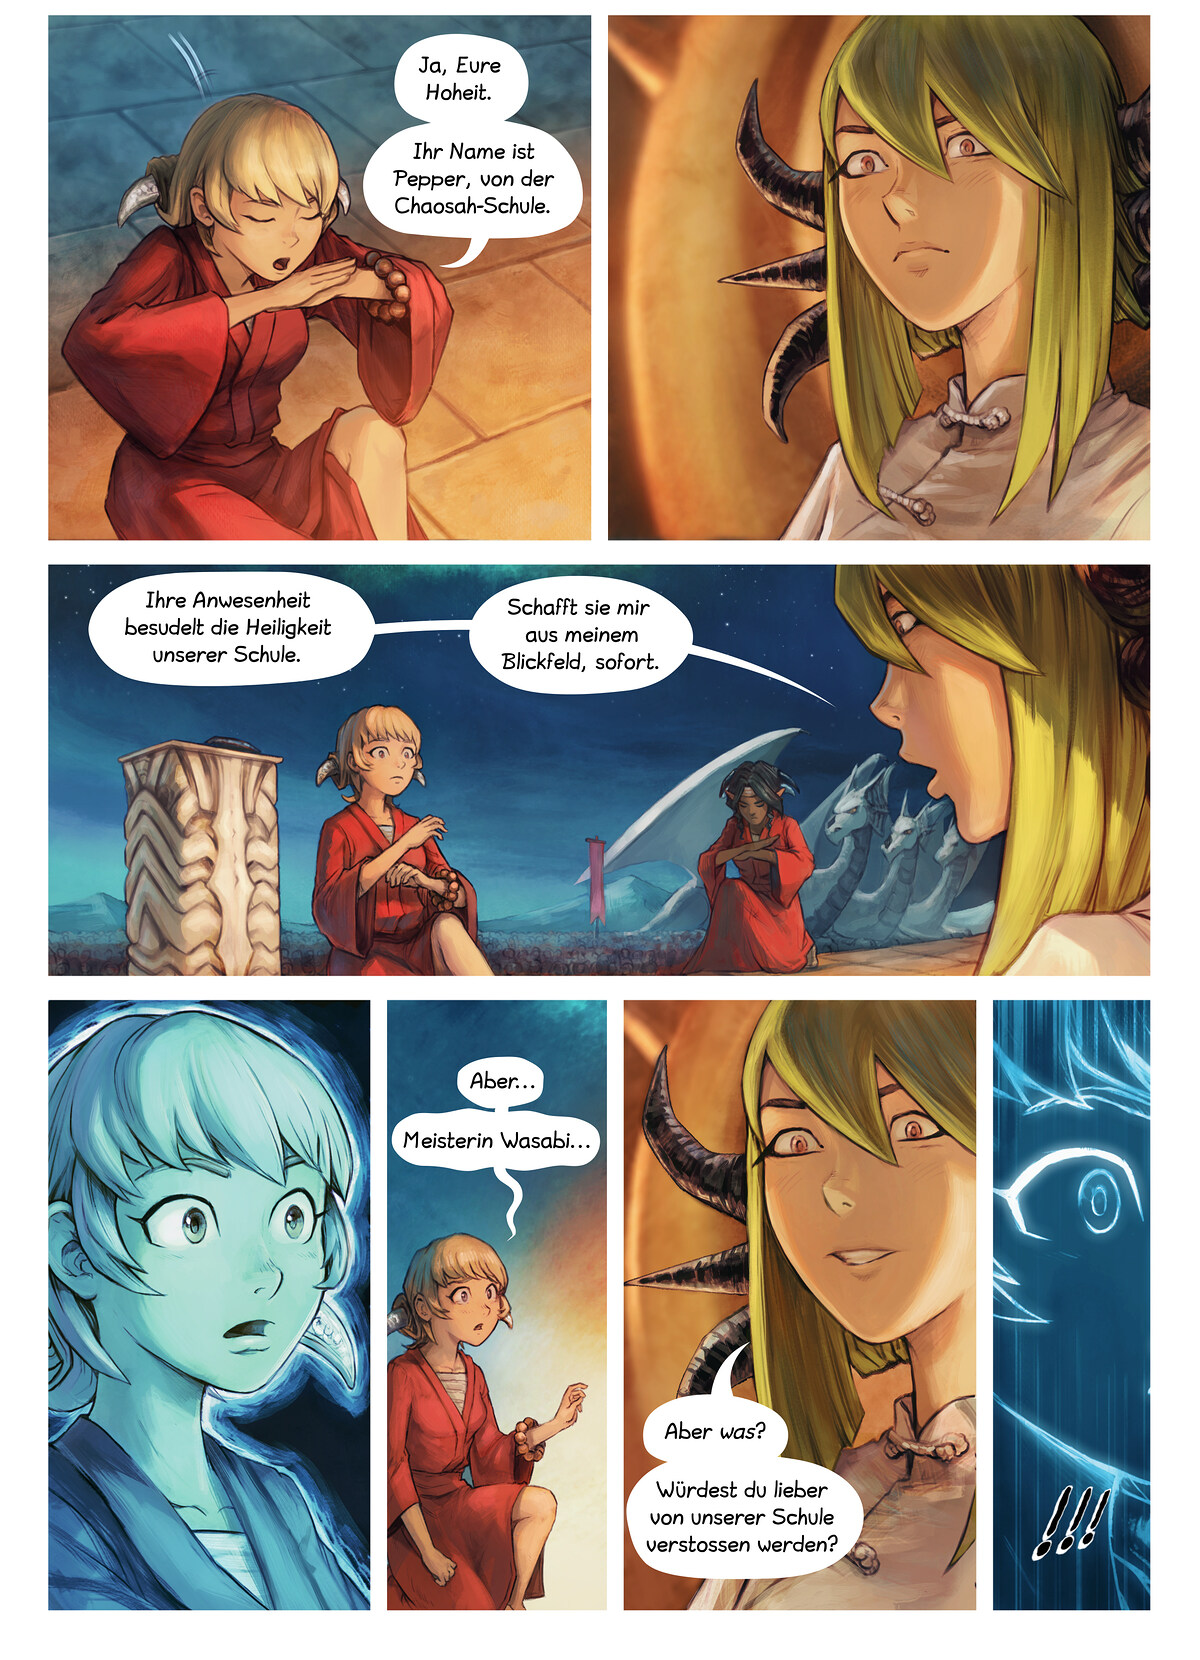 Episode 34: Shichimis Abschluss, Page 4